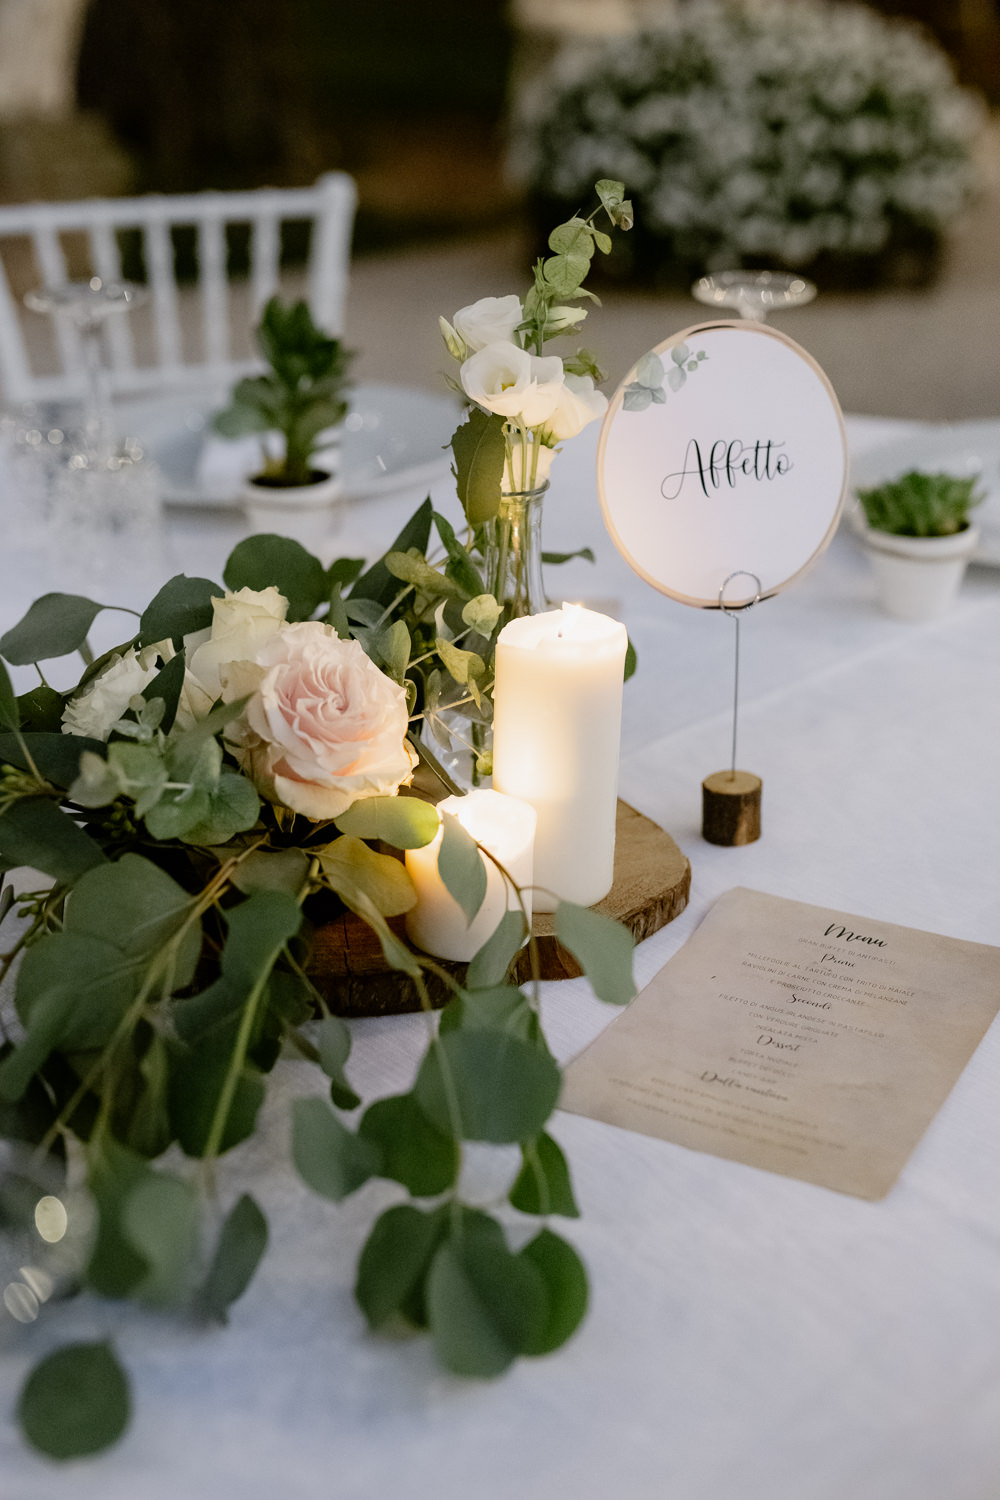 Centrepiece Flowers Log Candles Table Name Natural Italy Villa Wedding Flavia Eleonora Tullio